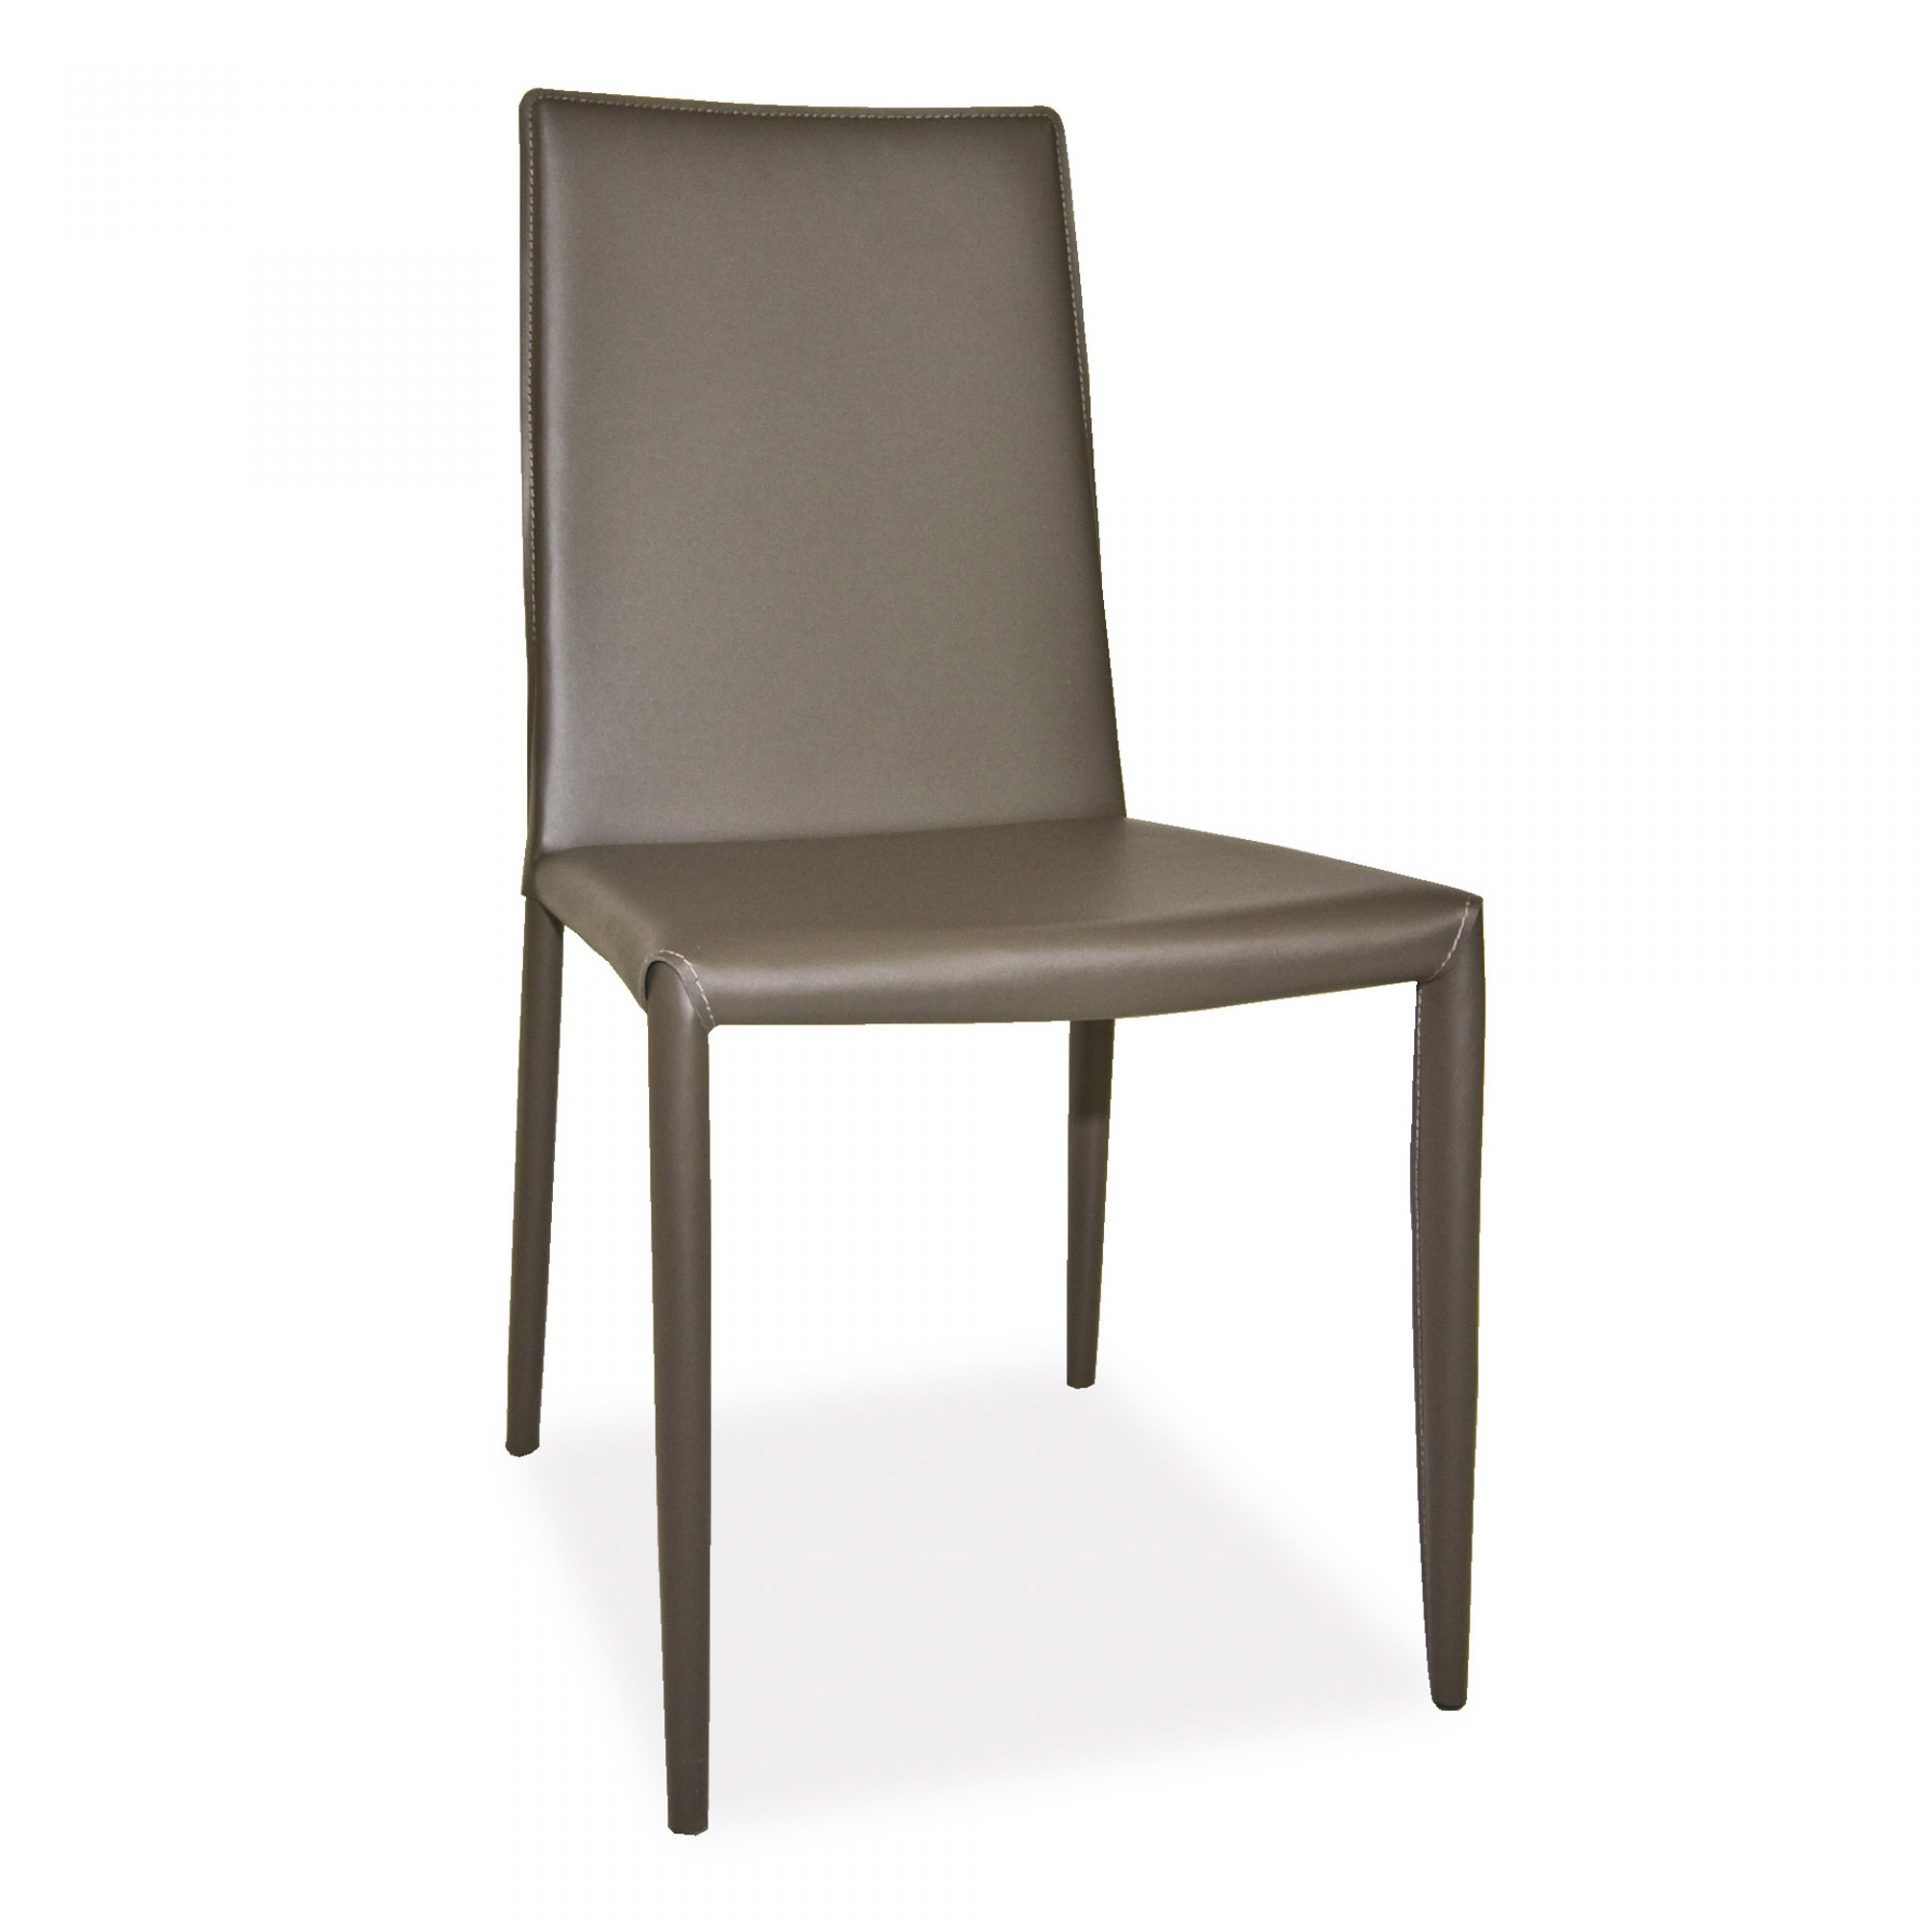 Lusso Dining Chair Charcoalm2  Dining Chairs  Moe's Wholesale Brilliant Wholesale Dining Room Chairs Inspiration